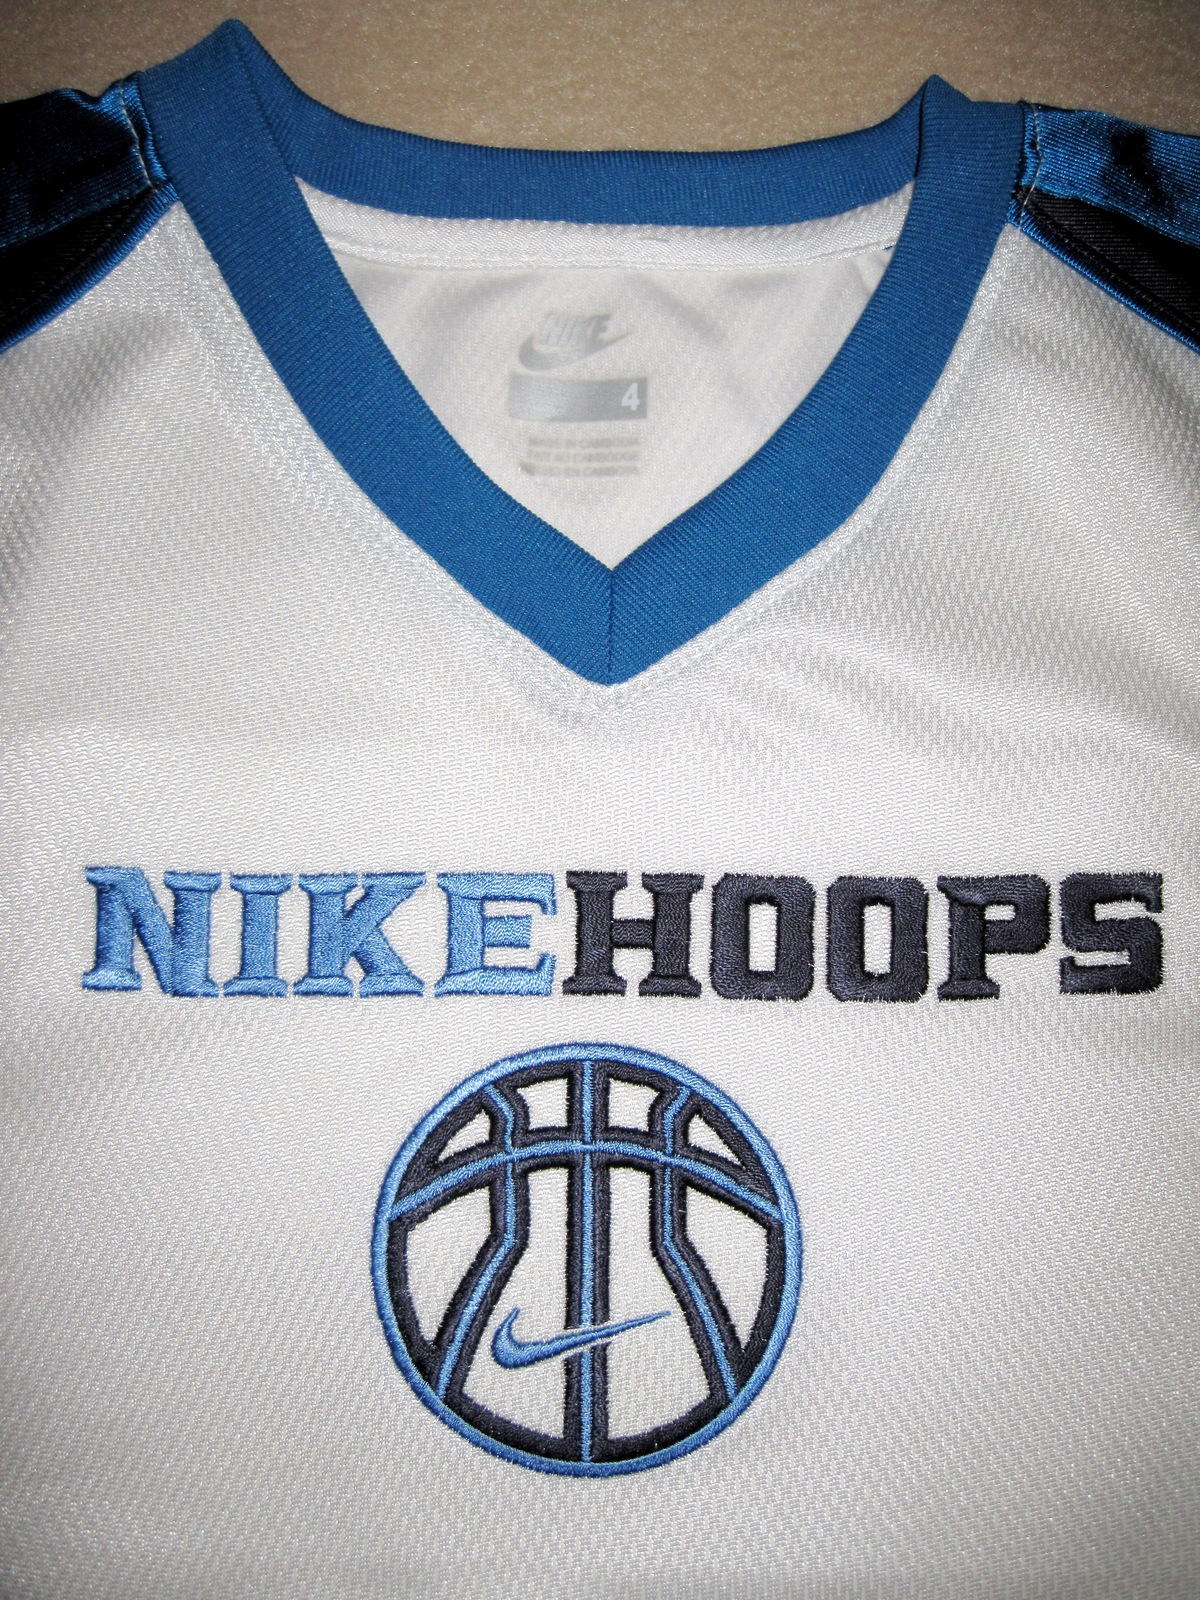 BOYS 6 - Nike Hoops - White-Electric Blue-Black BASKETBALL SPORTS JERSEY image 5